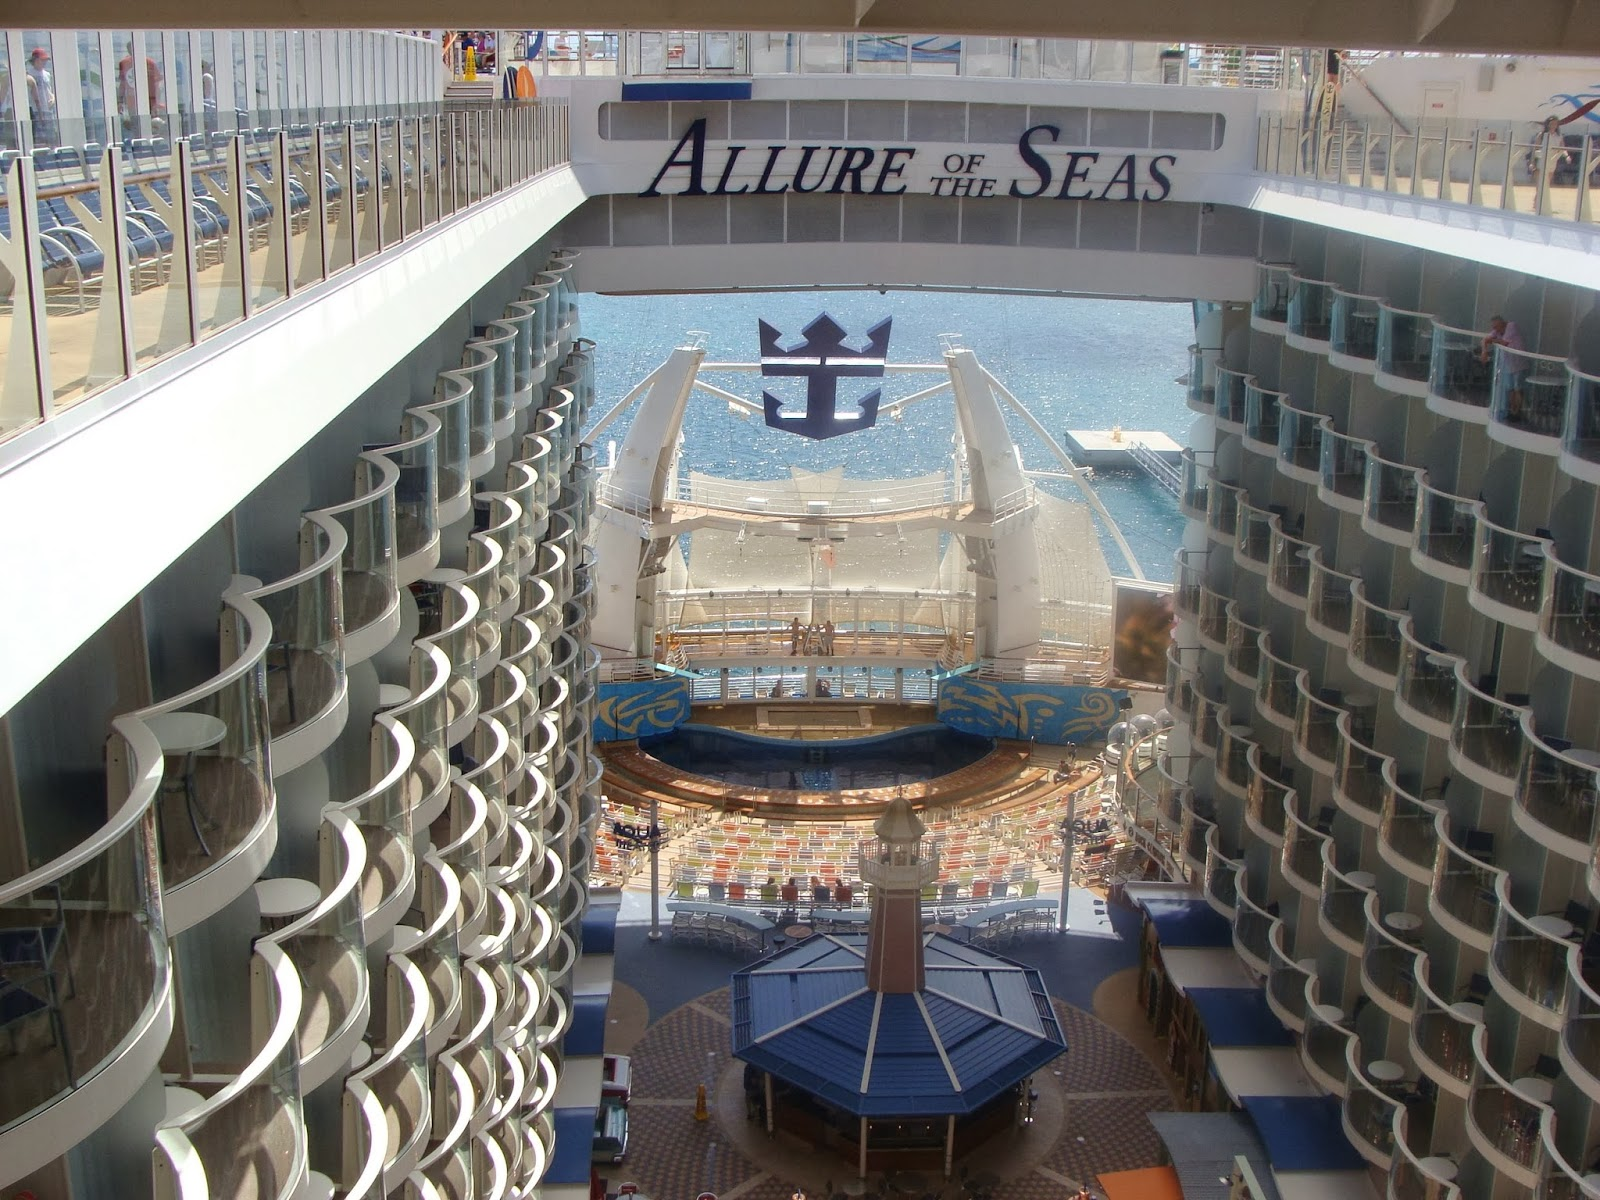 Vista del Allure of the Seas